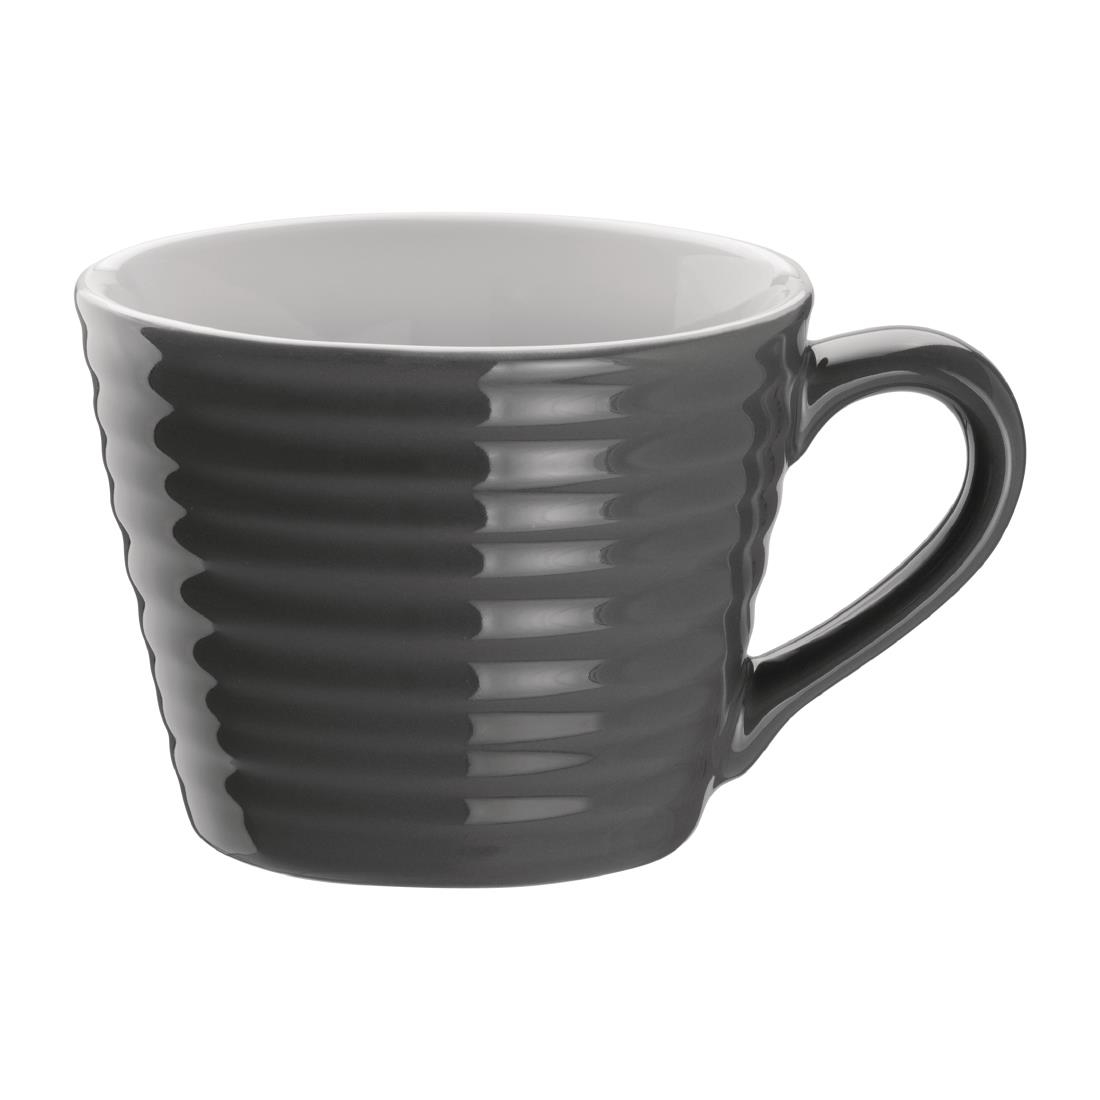 Mug A Cafe Olympia Café Aroma Mugs Charcoal 230ml